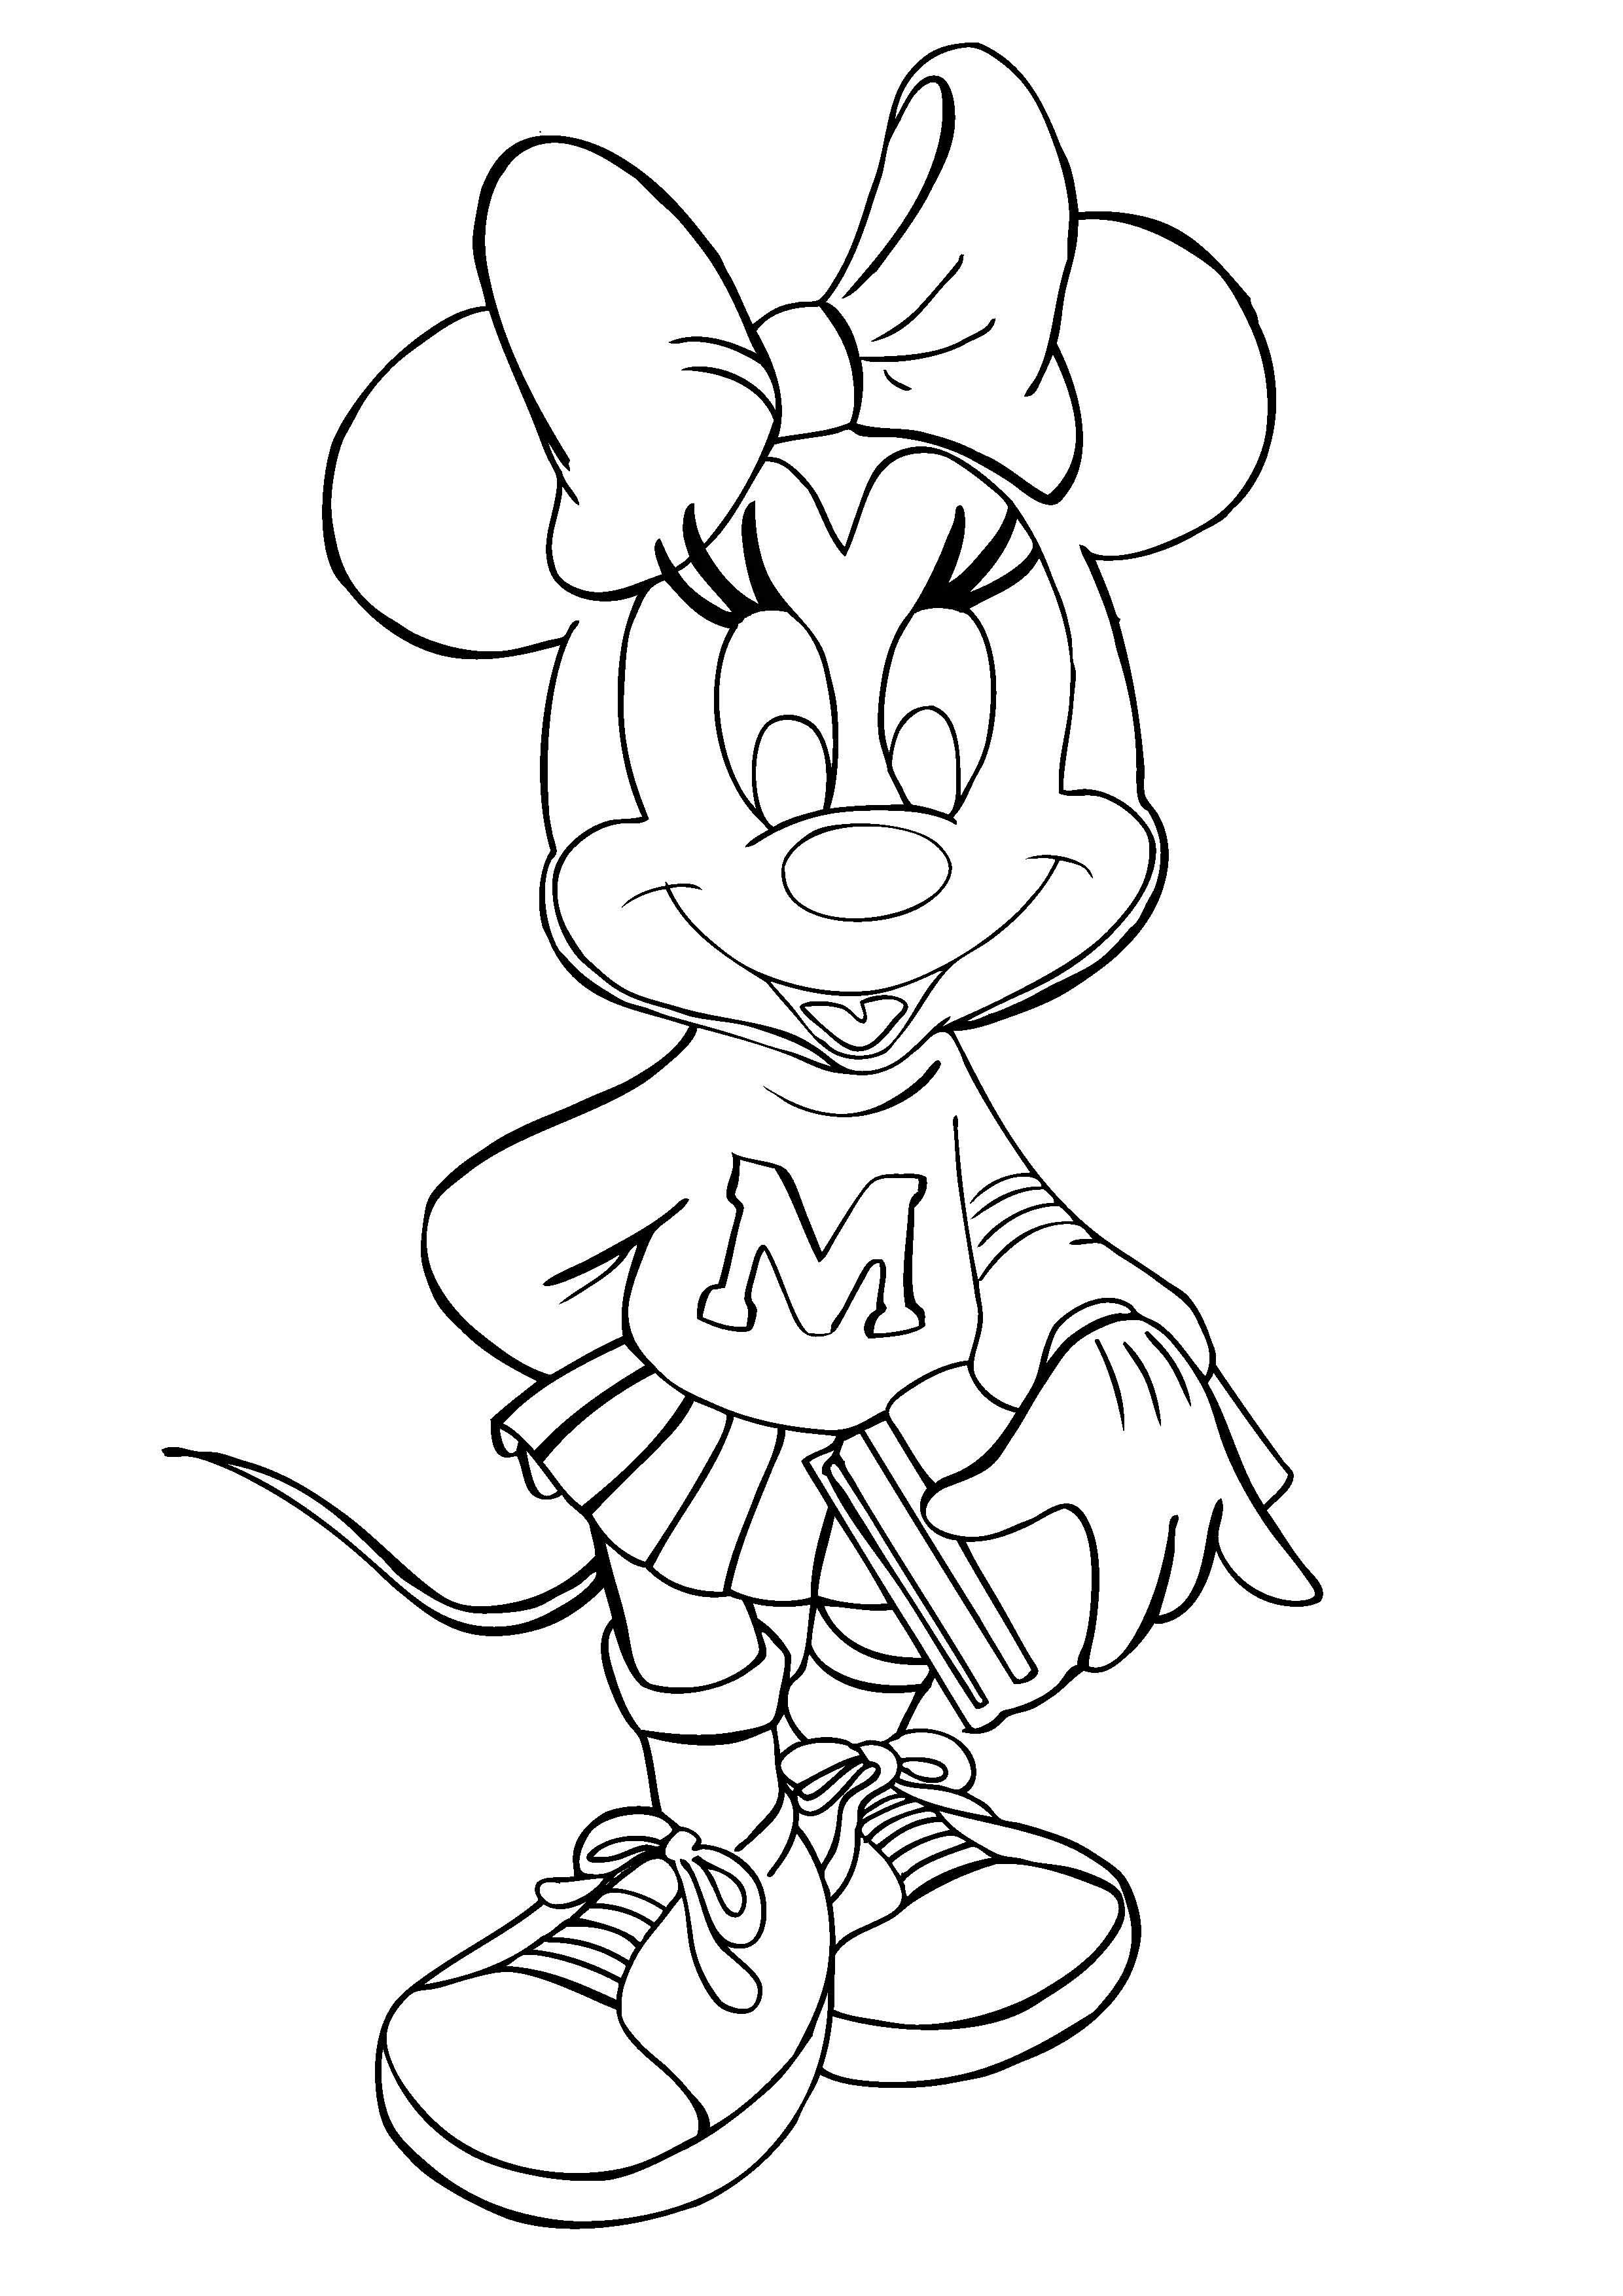 Minnie Mouse Coloring Pages For Kids Printable  Free Printable Minnie Mouse Coloring Pages For Kids